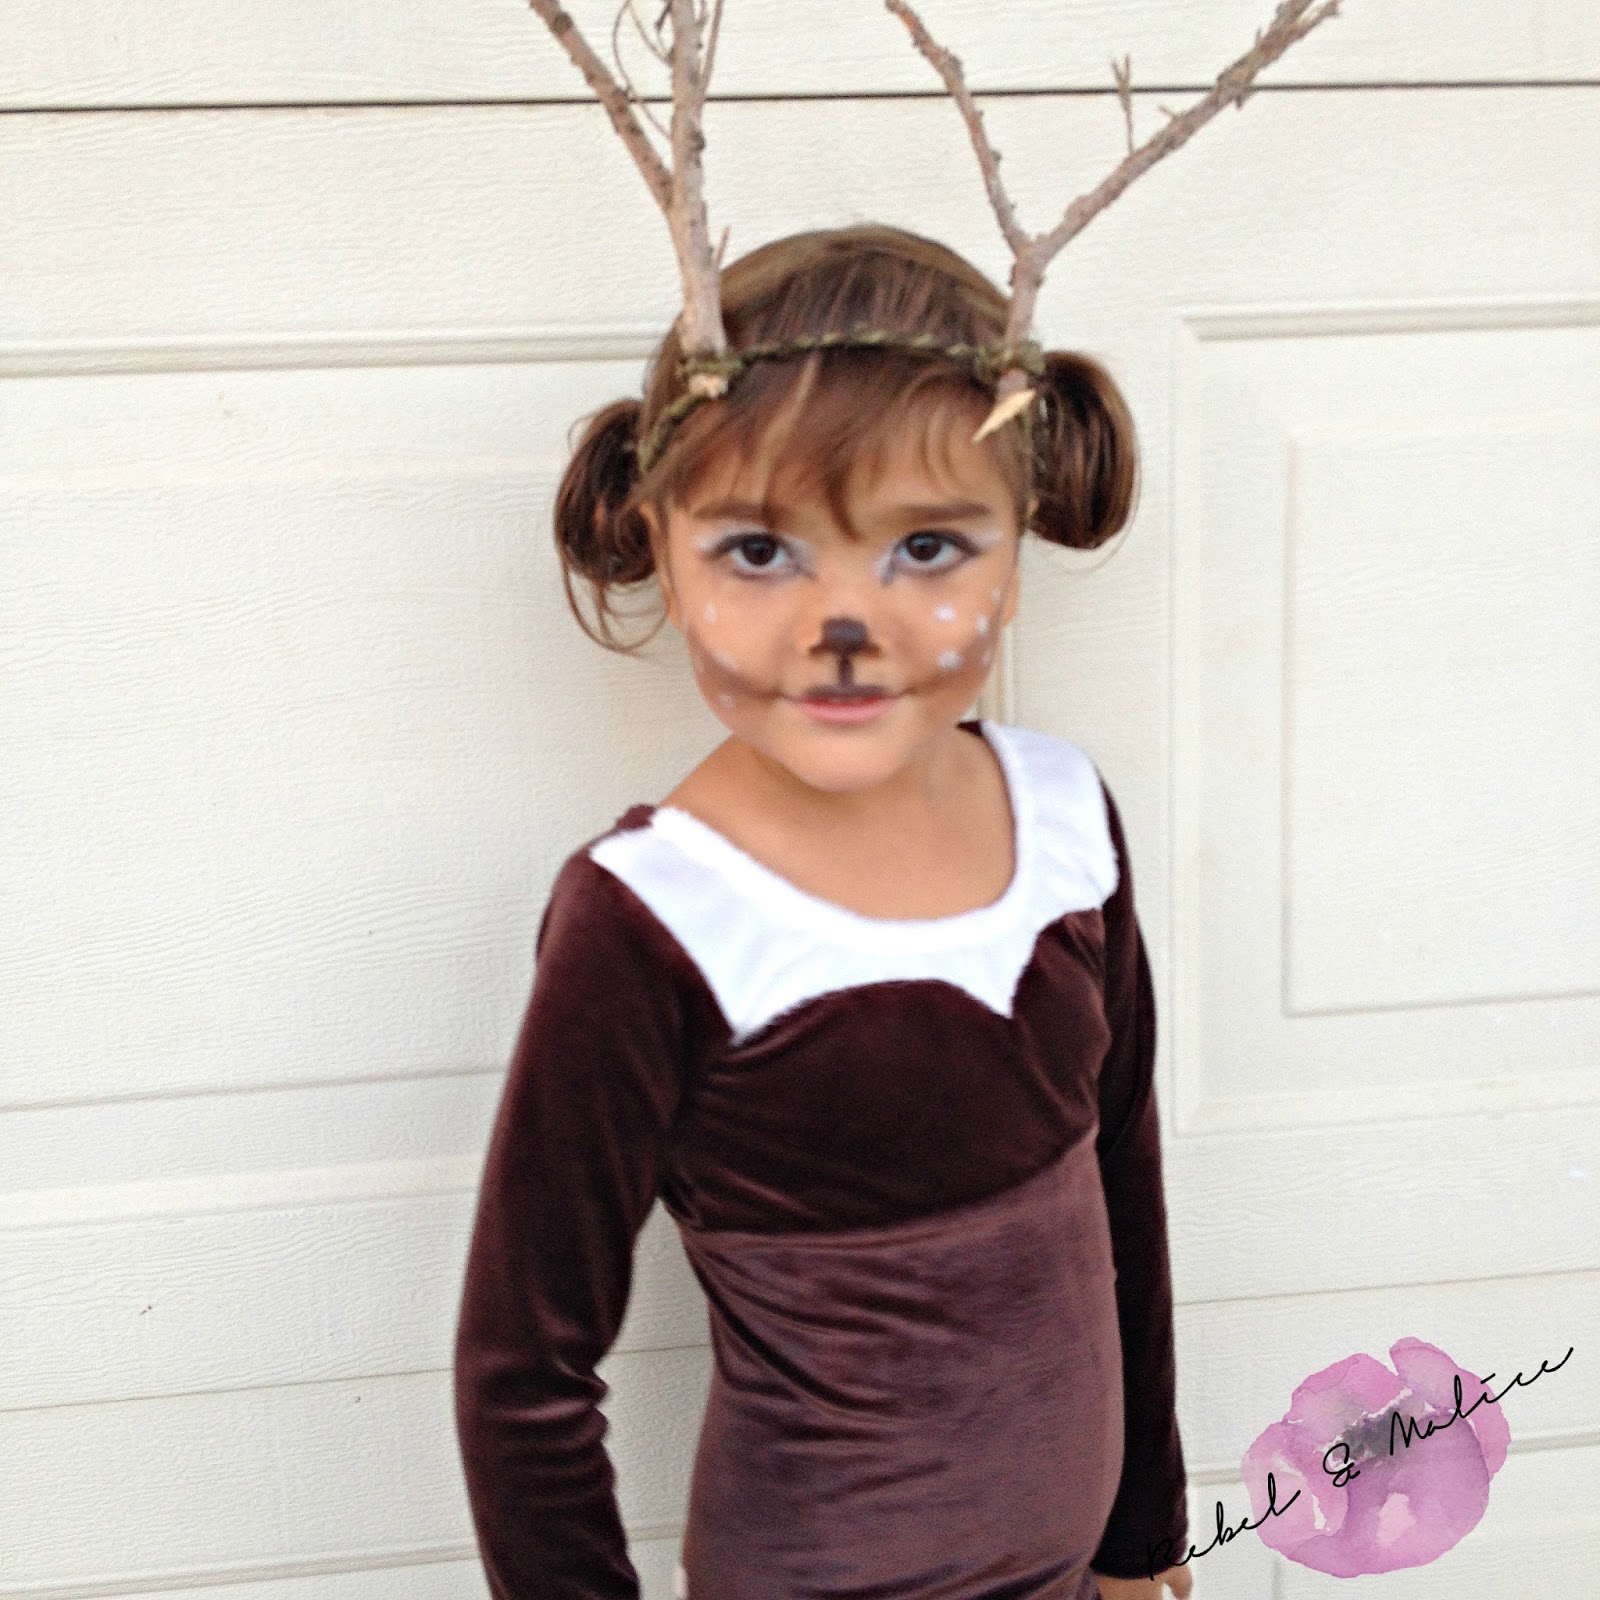 sc 1 st  Rebel u0026 Malice & DIY Deer Costume | Rebel u0026 Malice